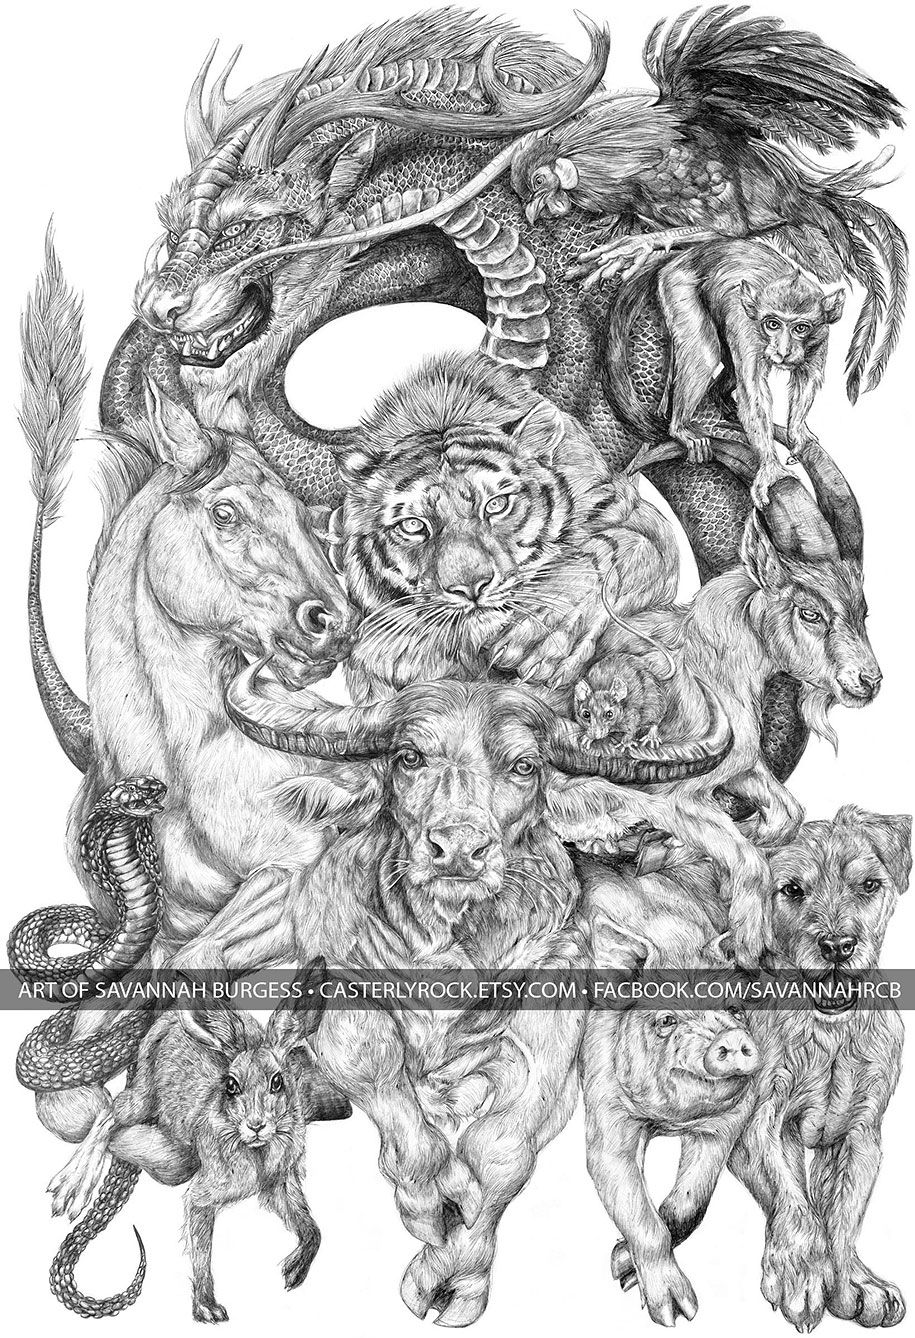 622dc2860 19-Year-Old Artist Spent All Summer Creating This Massive Chinese Zodiac  Drawing - click to see her process!